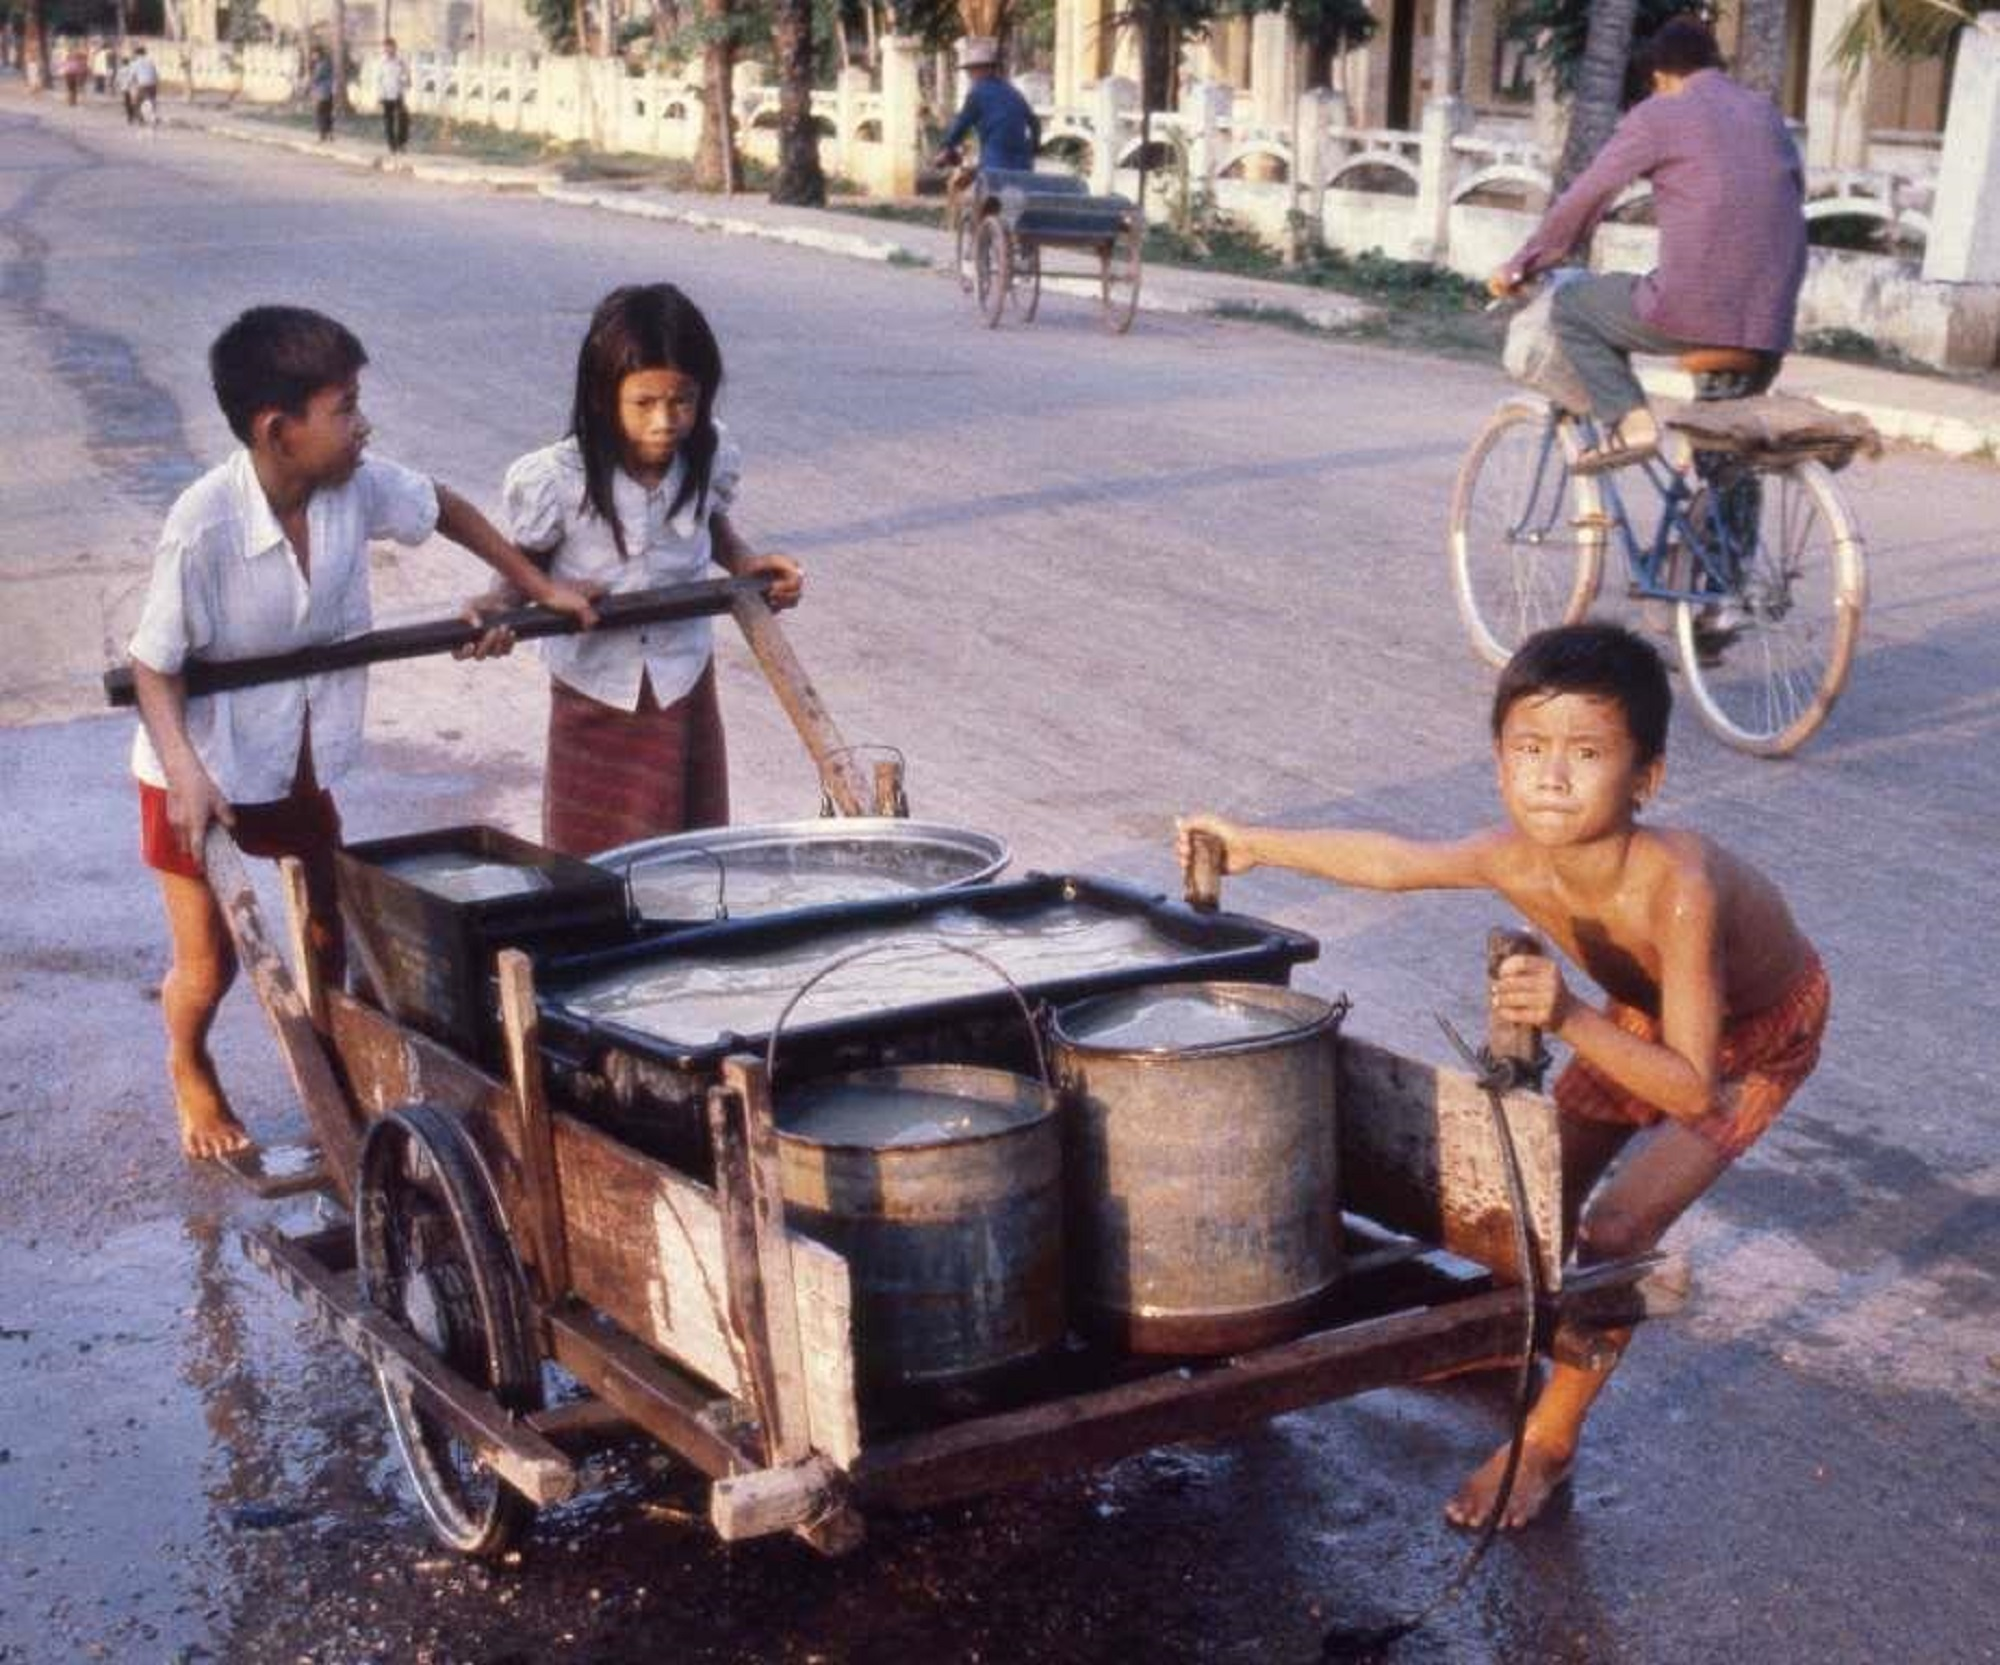 Cambodia reawakening – One year after the Khmer Rouge